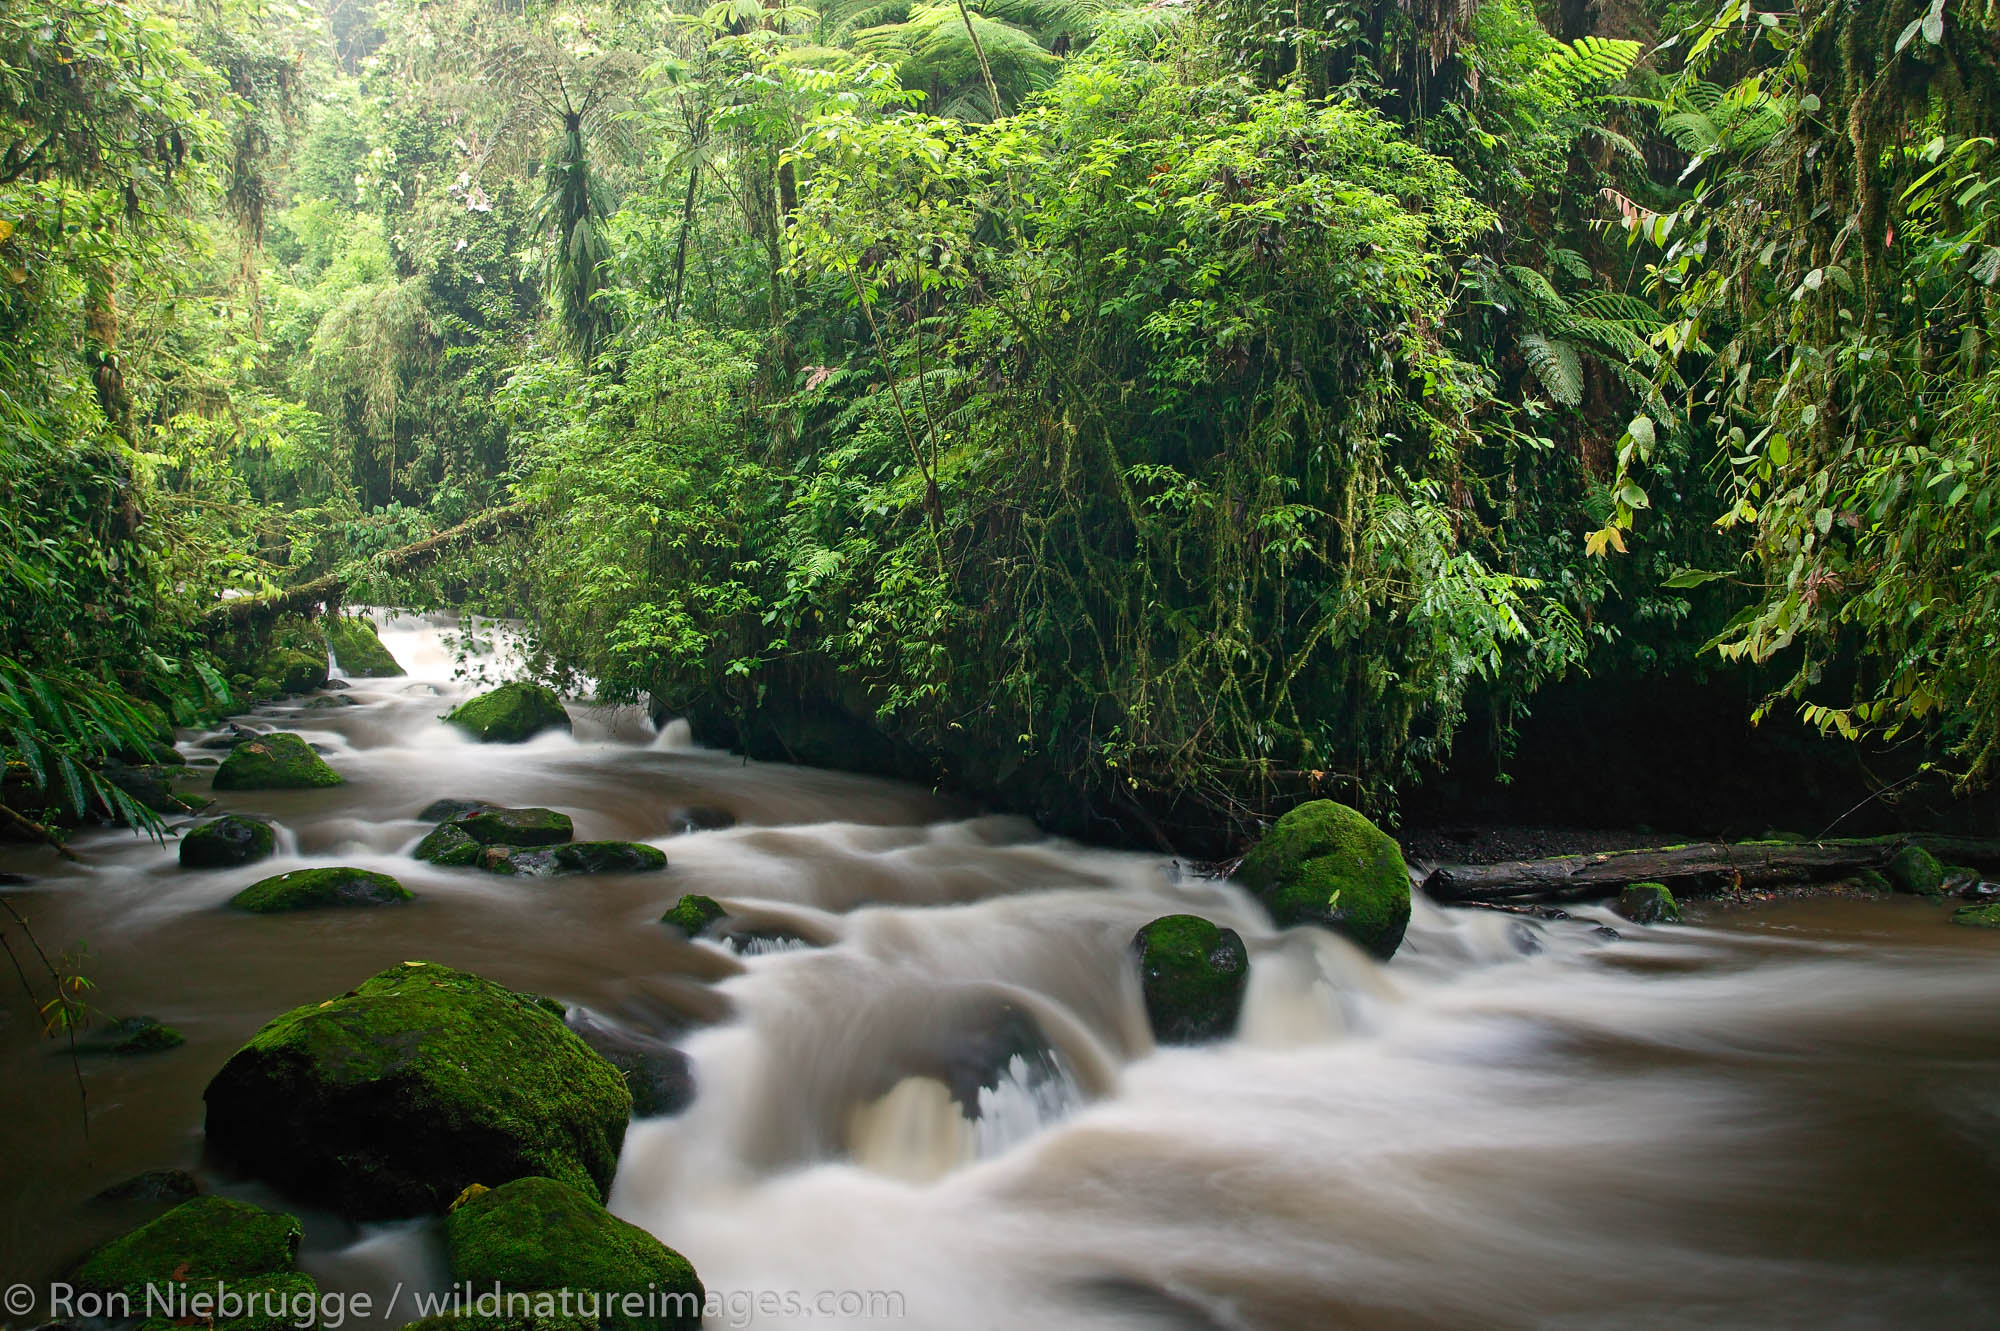 The La Paz River flows along the trail at the La Paz Waterfall Gardens and Peace Lodge, Costa Rica.